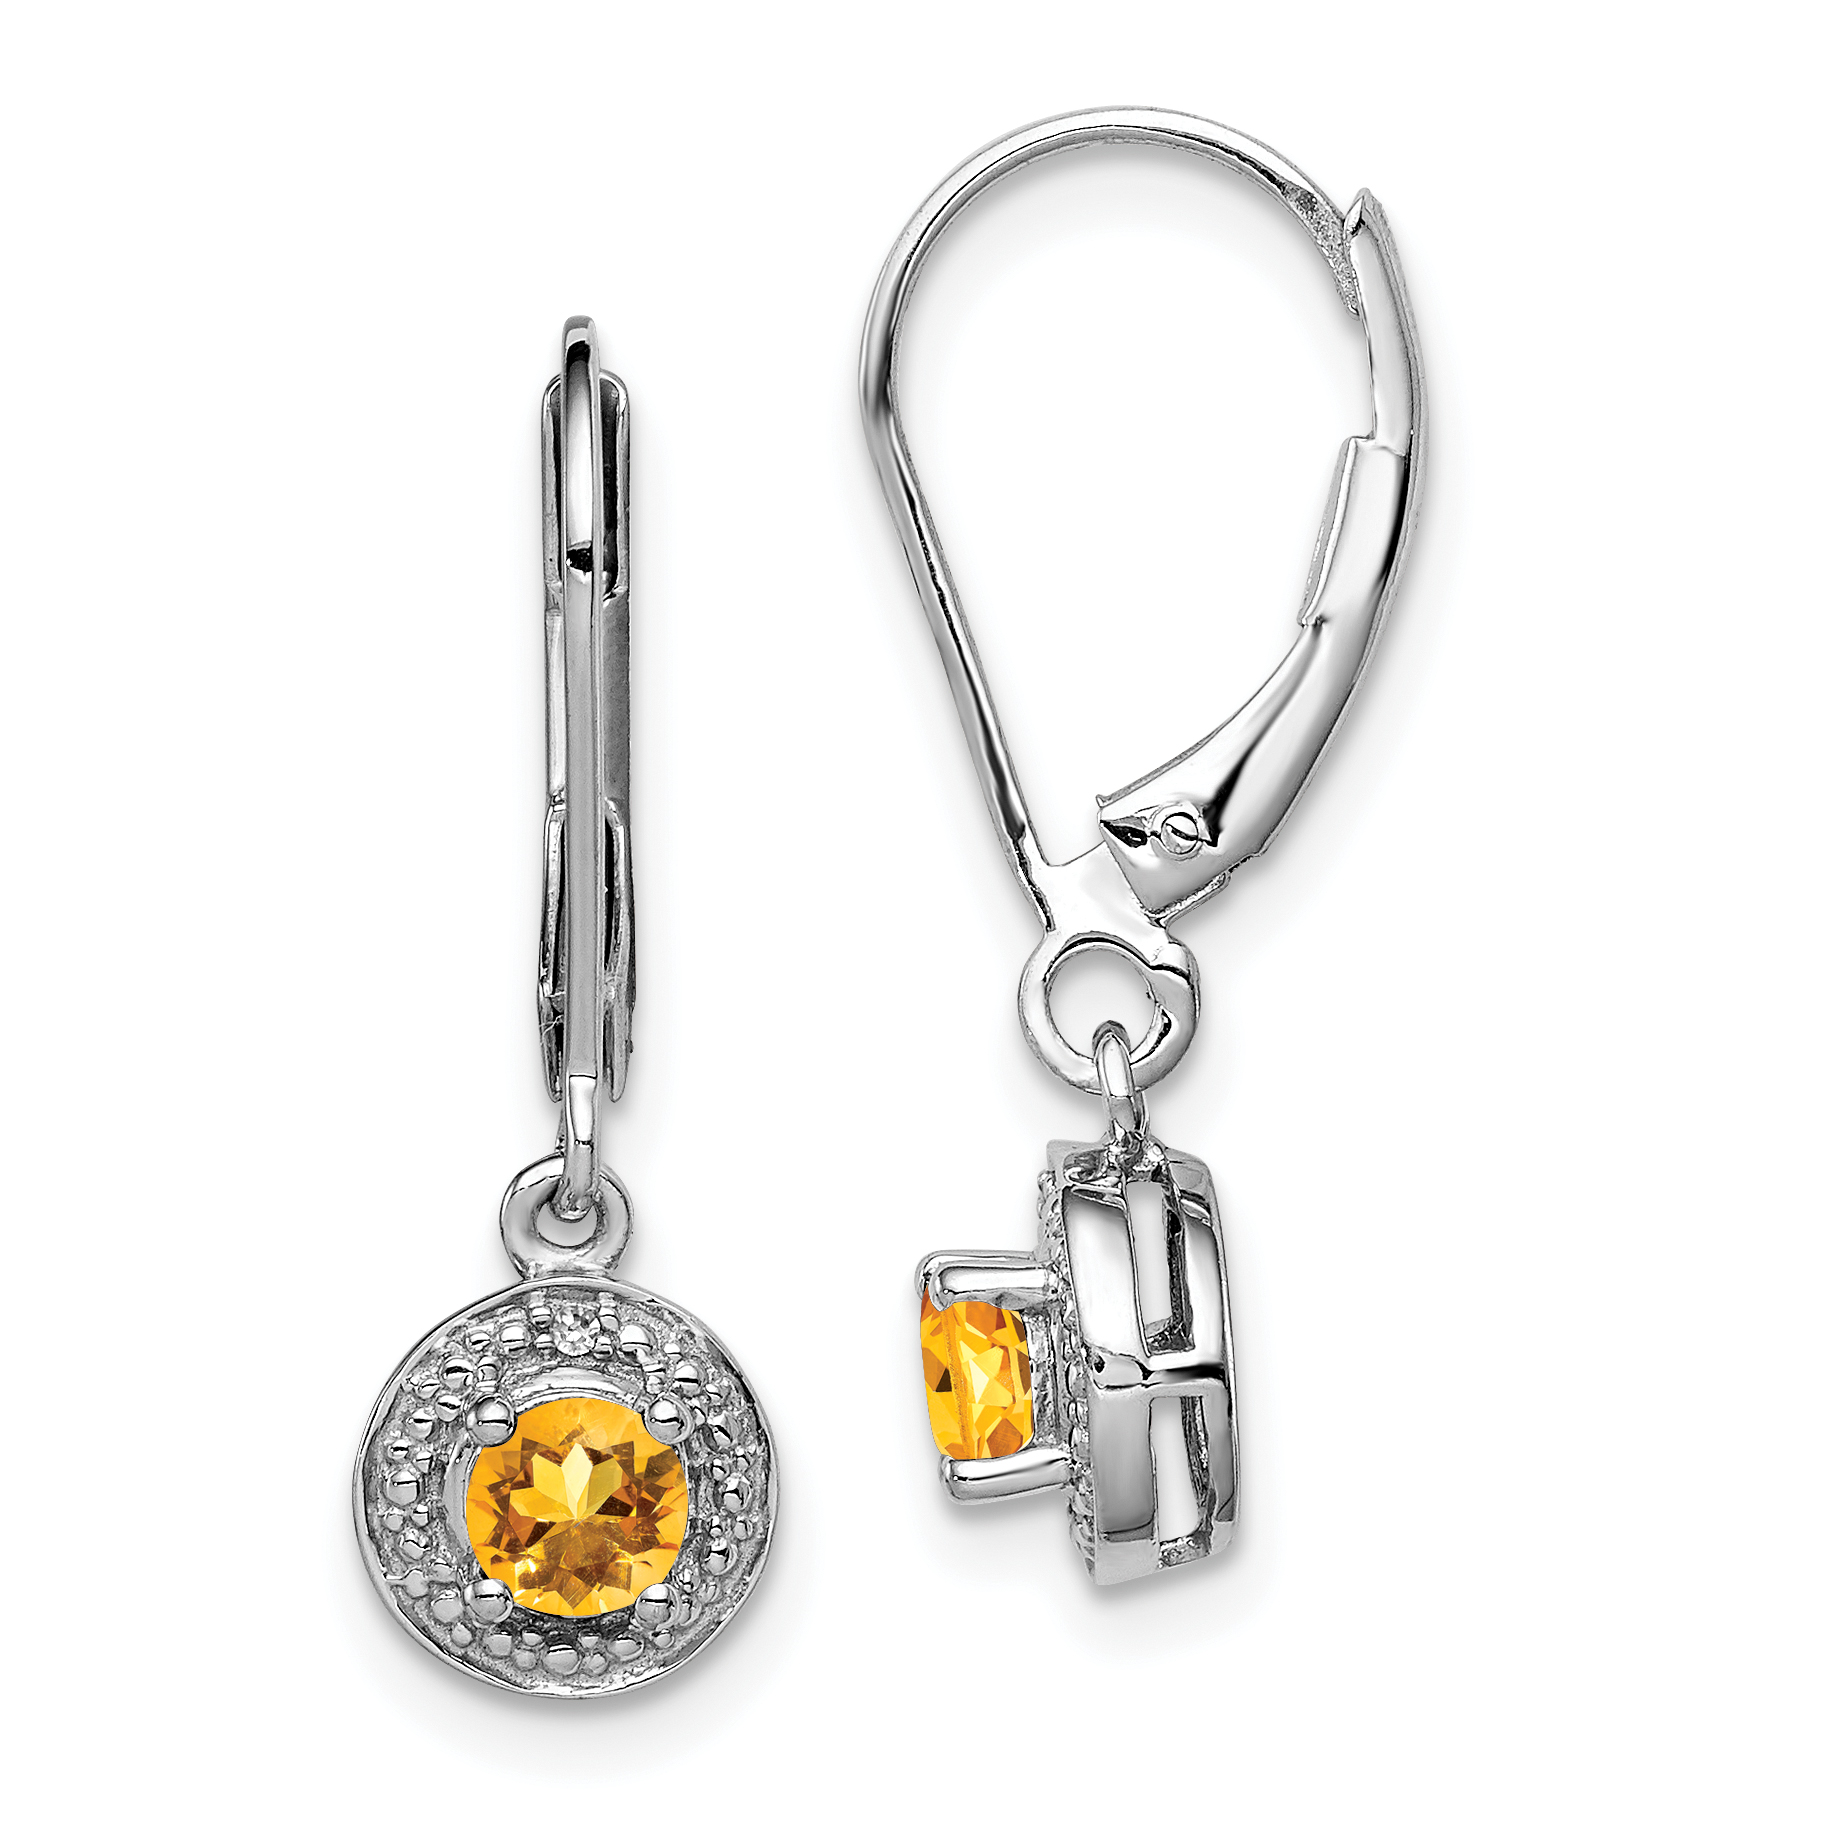 925 Sterling Silver Diamond Yellow Citrine Leverback Earrings Lever Back Set Drop Dangle Birthstone November Fine Jewelry Gifts For Women For Her - image 4 of 4